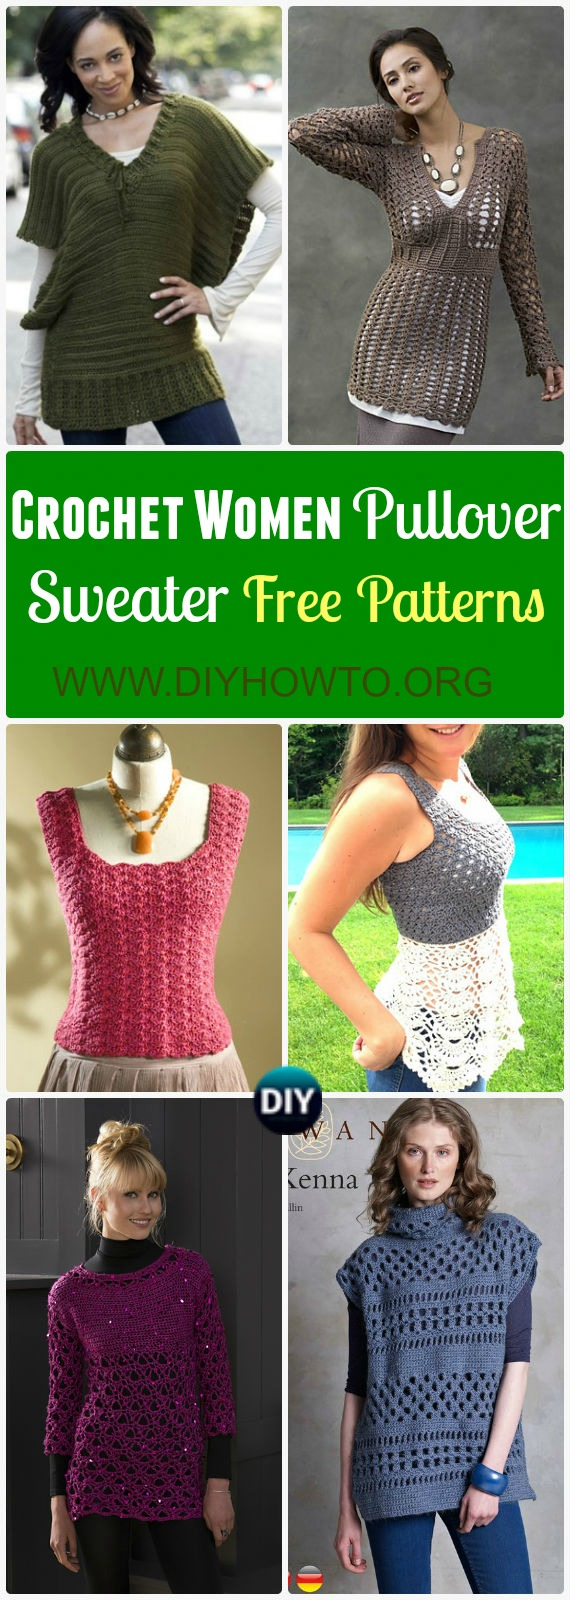 A collection of crochet women fashions: Crochet Women Pullover Sweater, tops and tunics free patterns